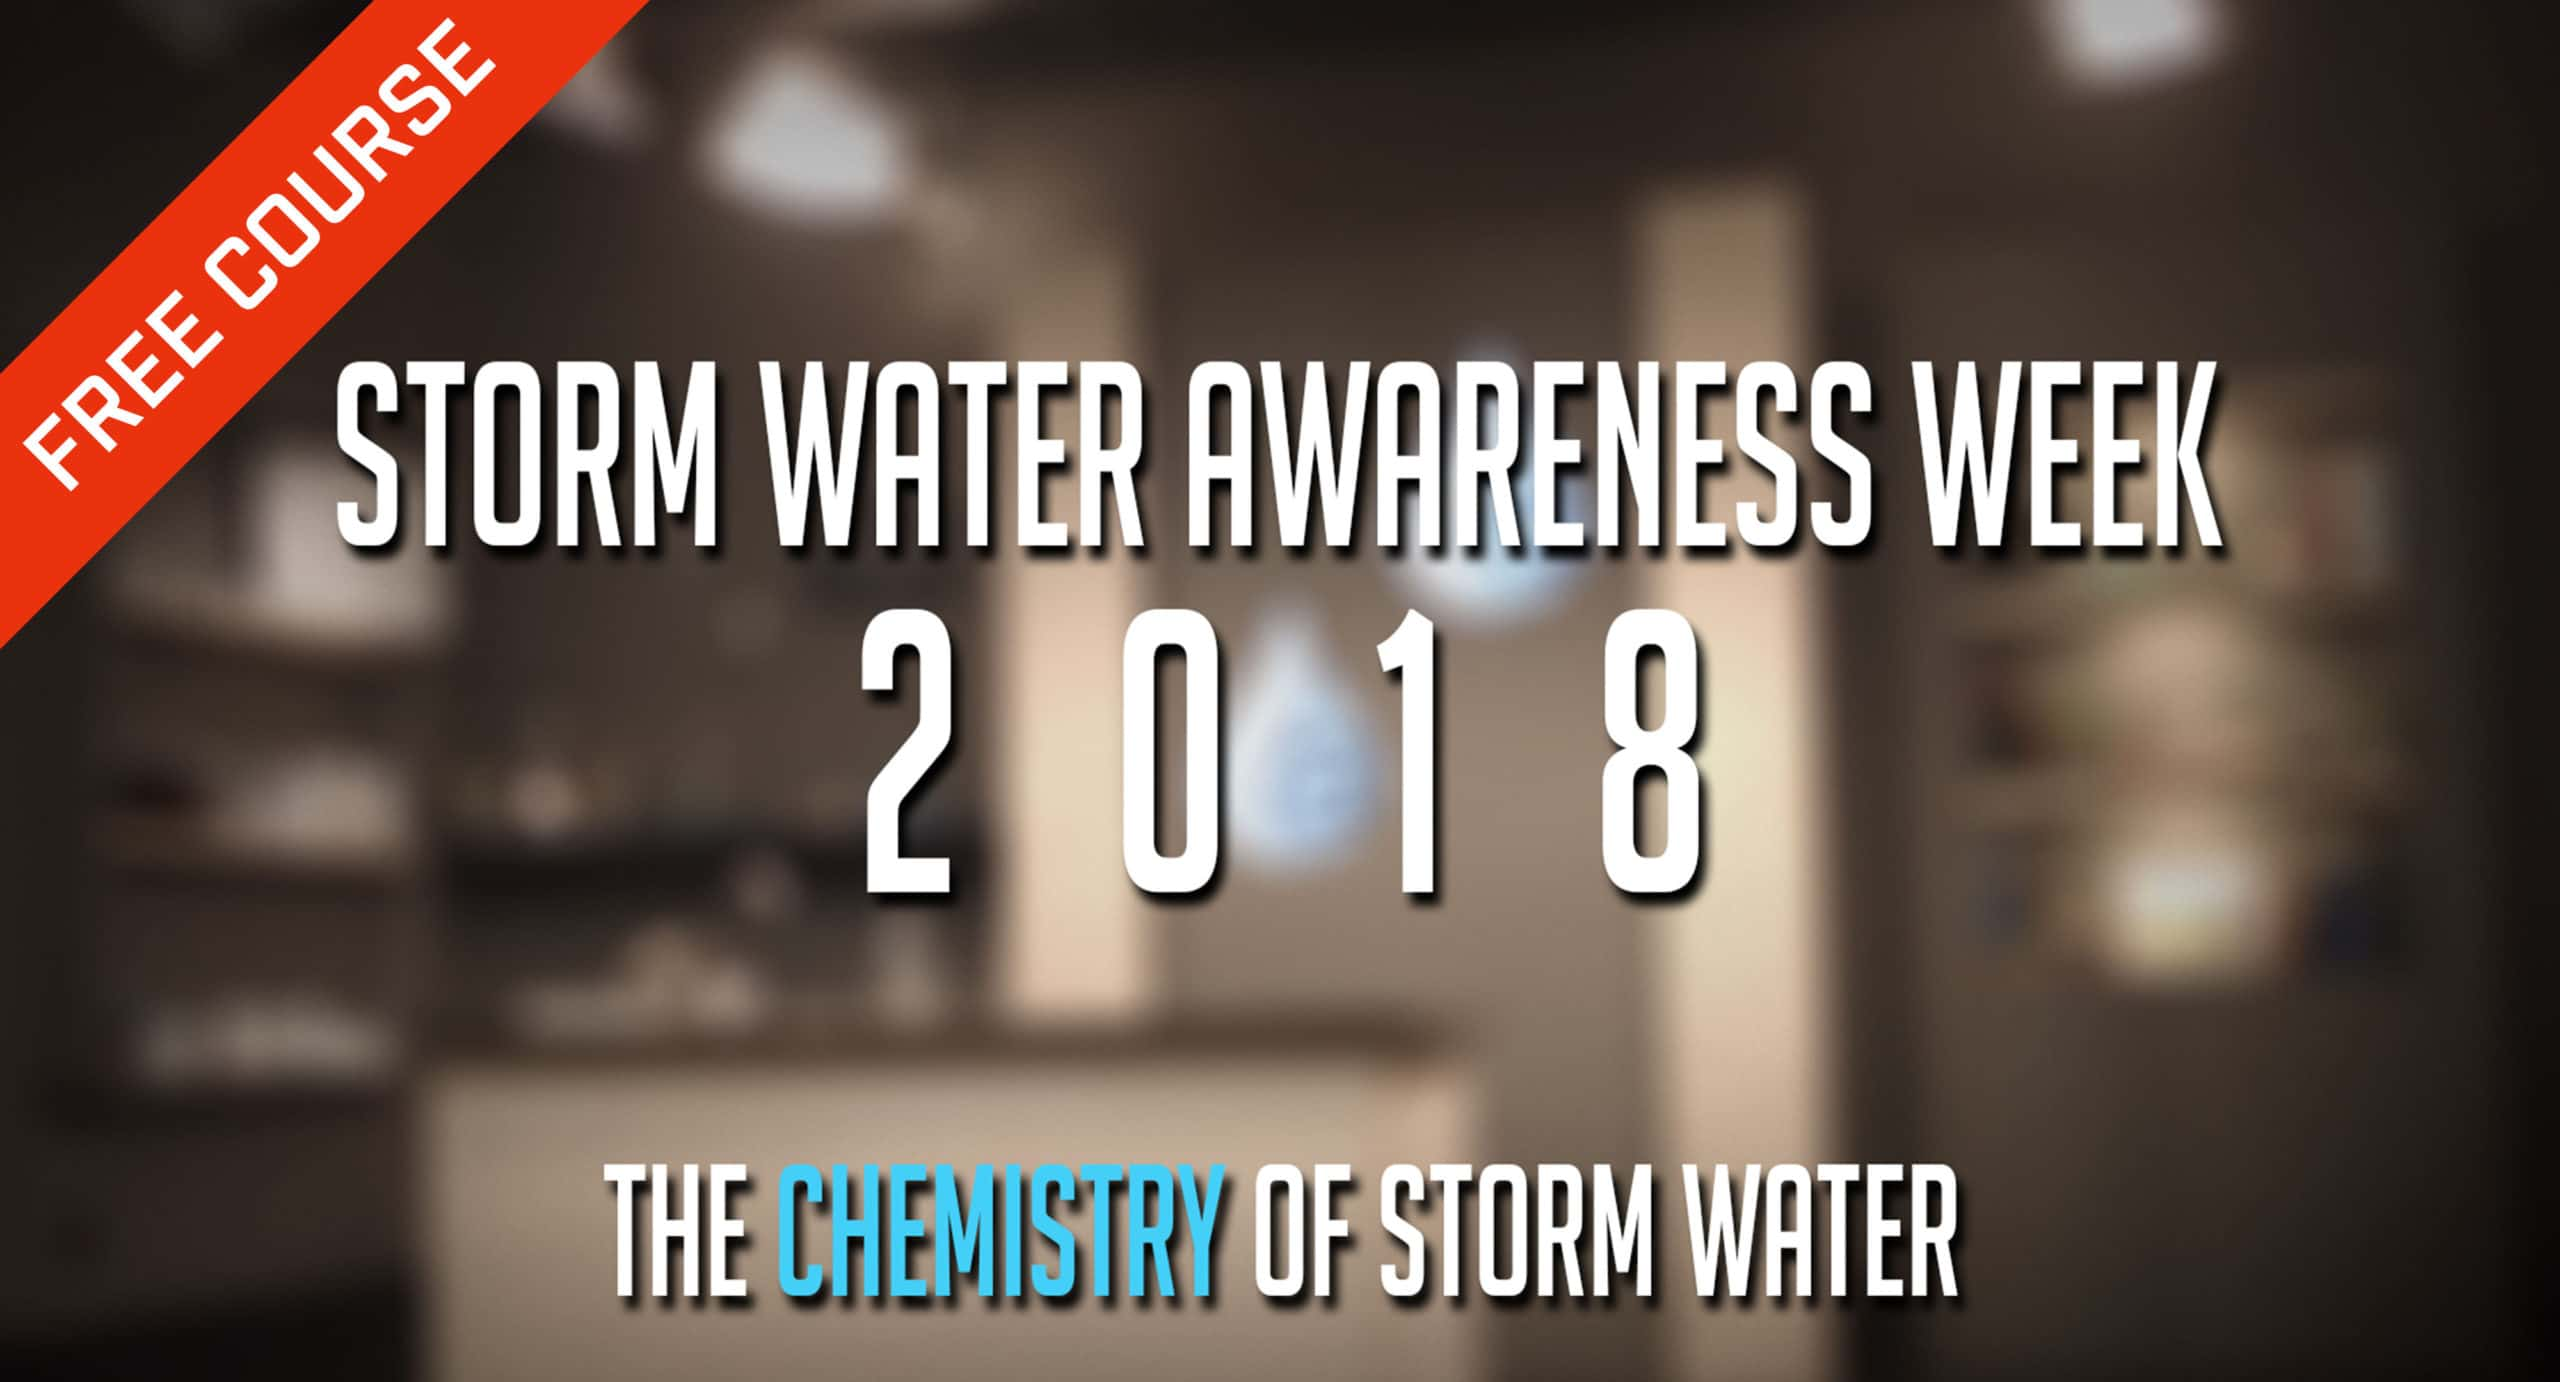 Storm Water Awareness Week 2018